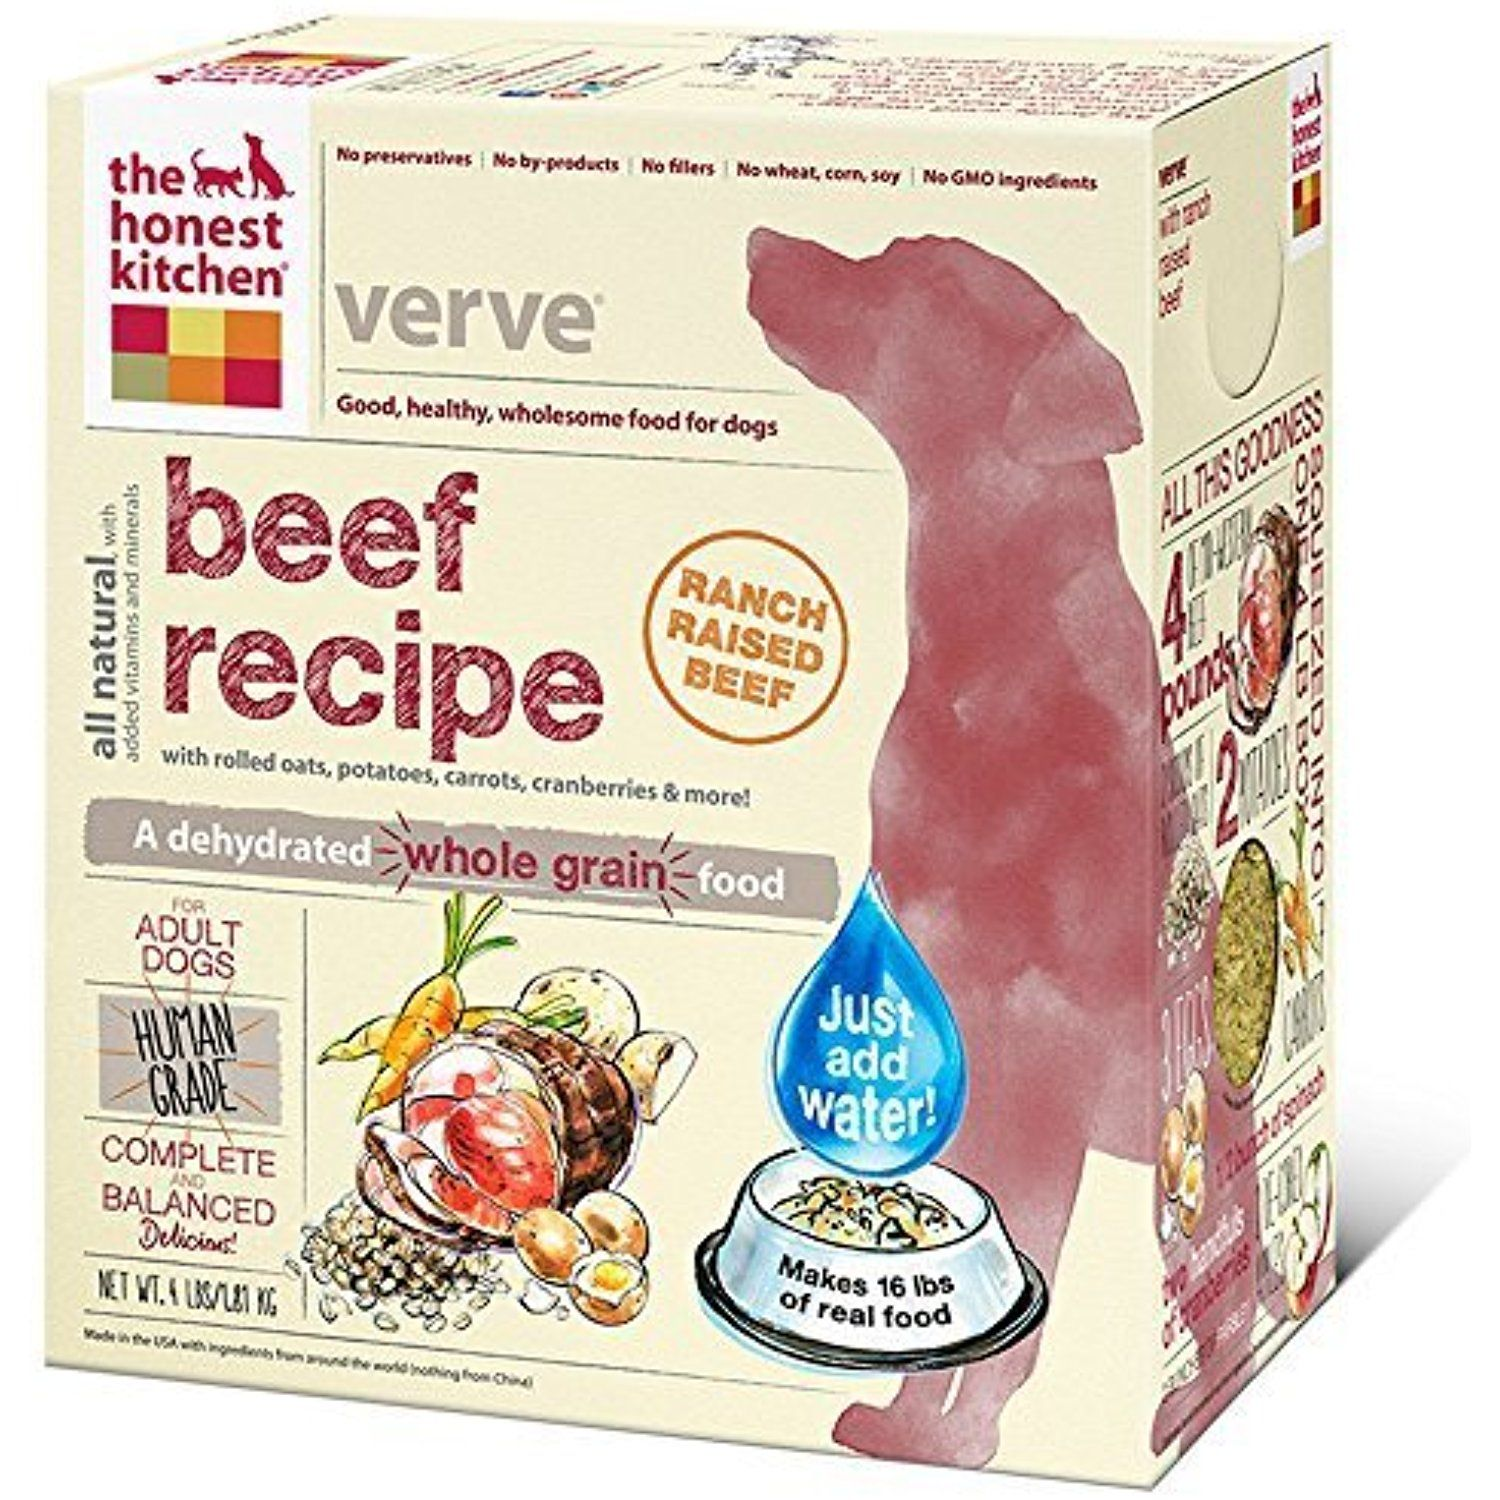 The Honest Kitchen Verve Beef Whole Grain Dog Food 4 Lb By The